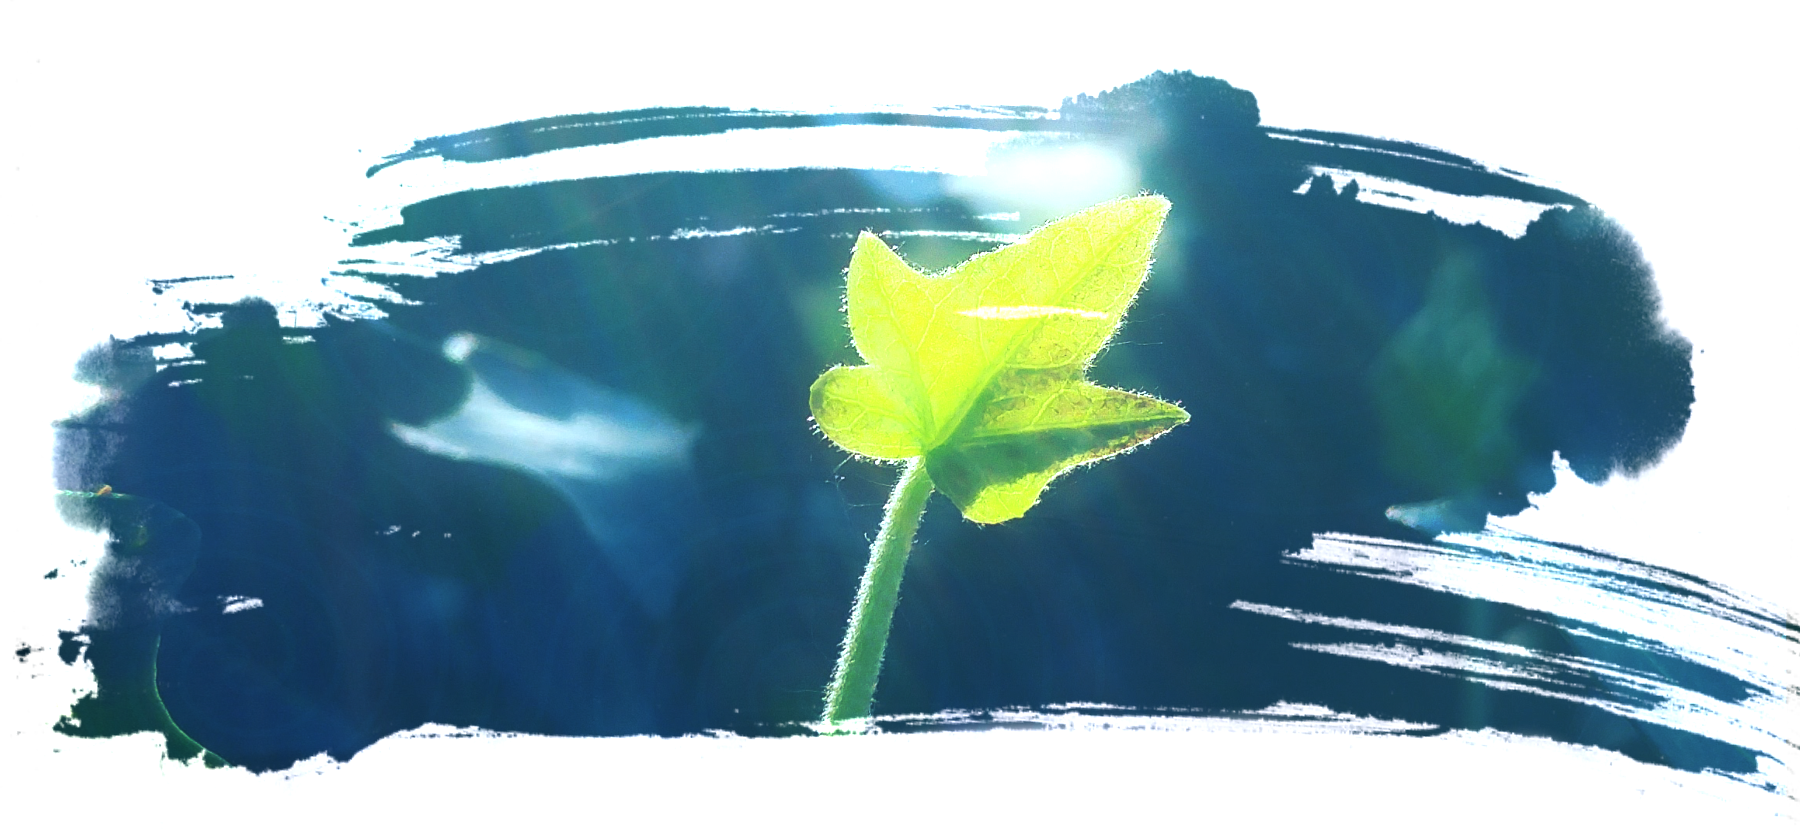 a brushstroke shaped image with a single baby ivy leaf facing an unseen light source with a teal dark greenish background which is slightly blurred